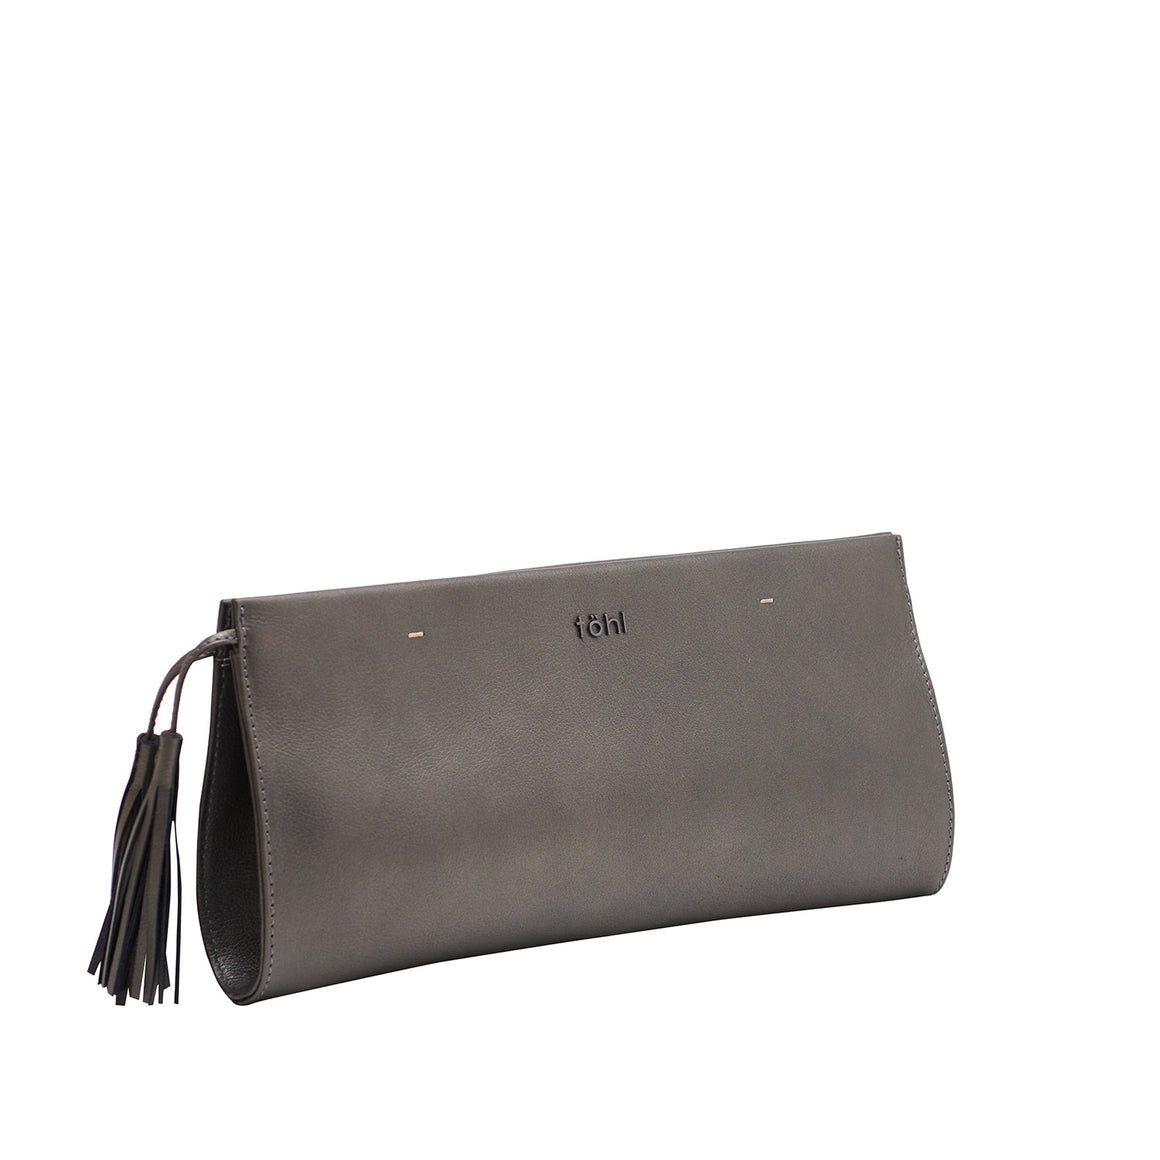 CH 0005 - TOHL DEMI WOMEN'S TASSELLED GRIP CLUTCH - METALLIC SMOKE